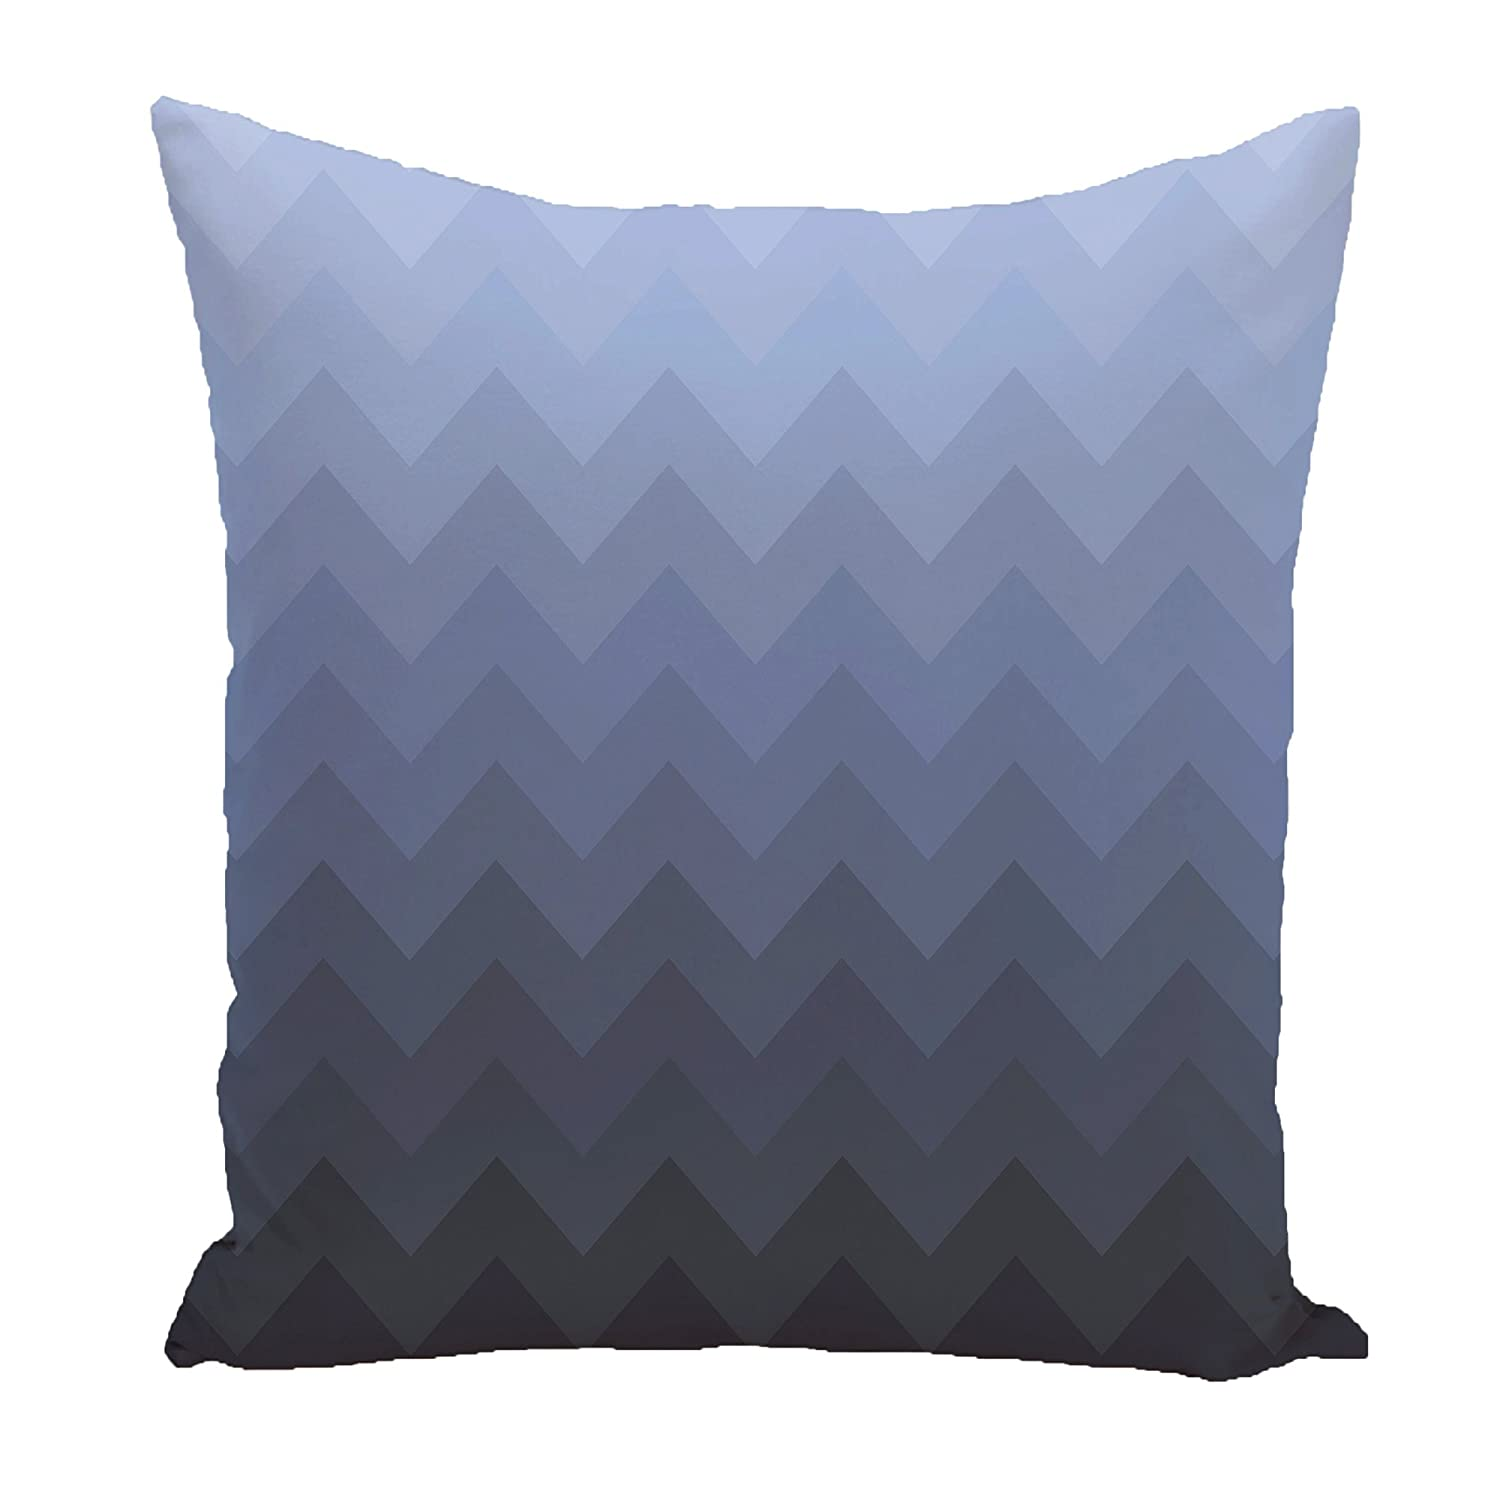 20 by 20 Kess InHouse MaJoBV Estrella De Mar Blue Starfish Throw Pillow